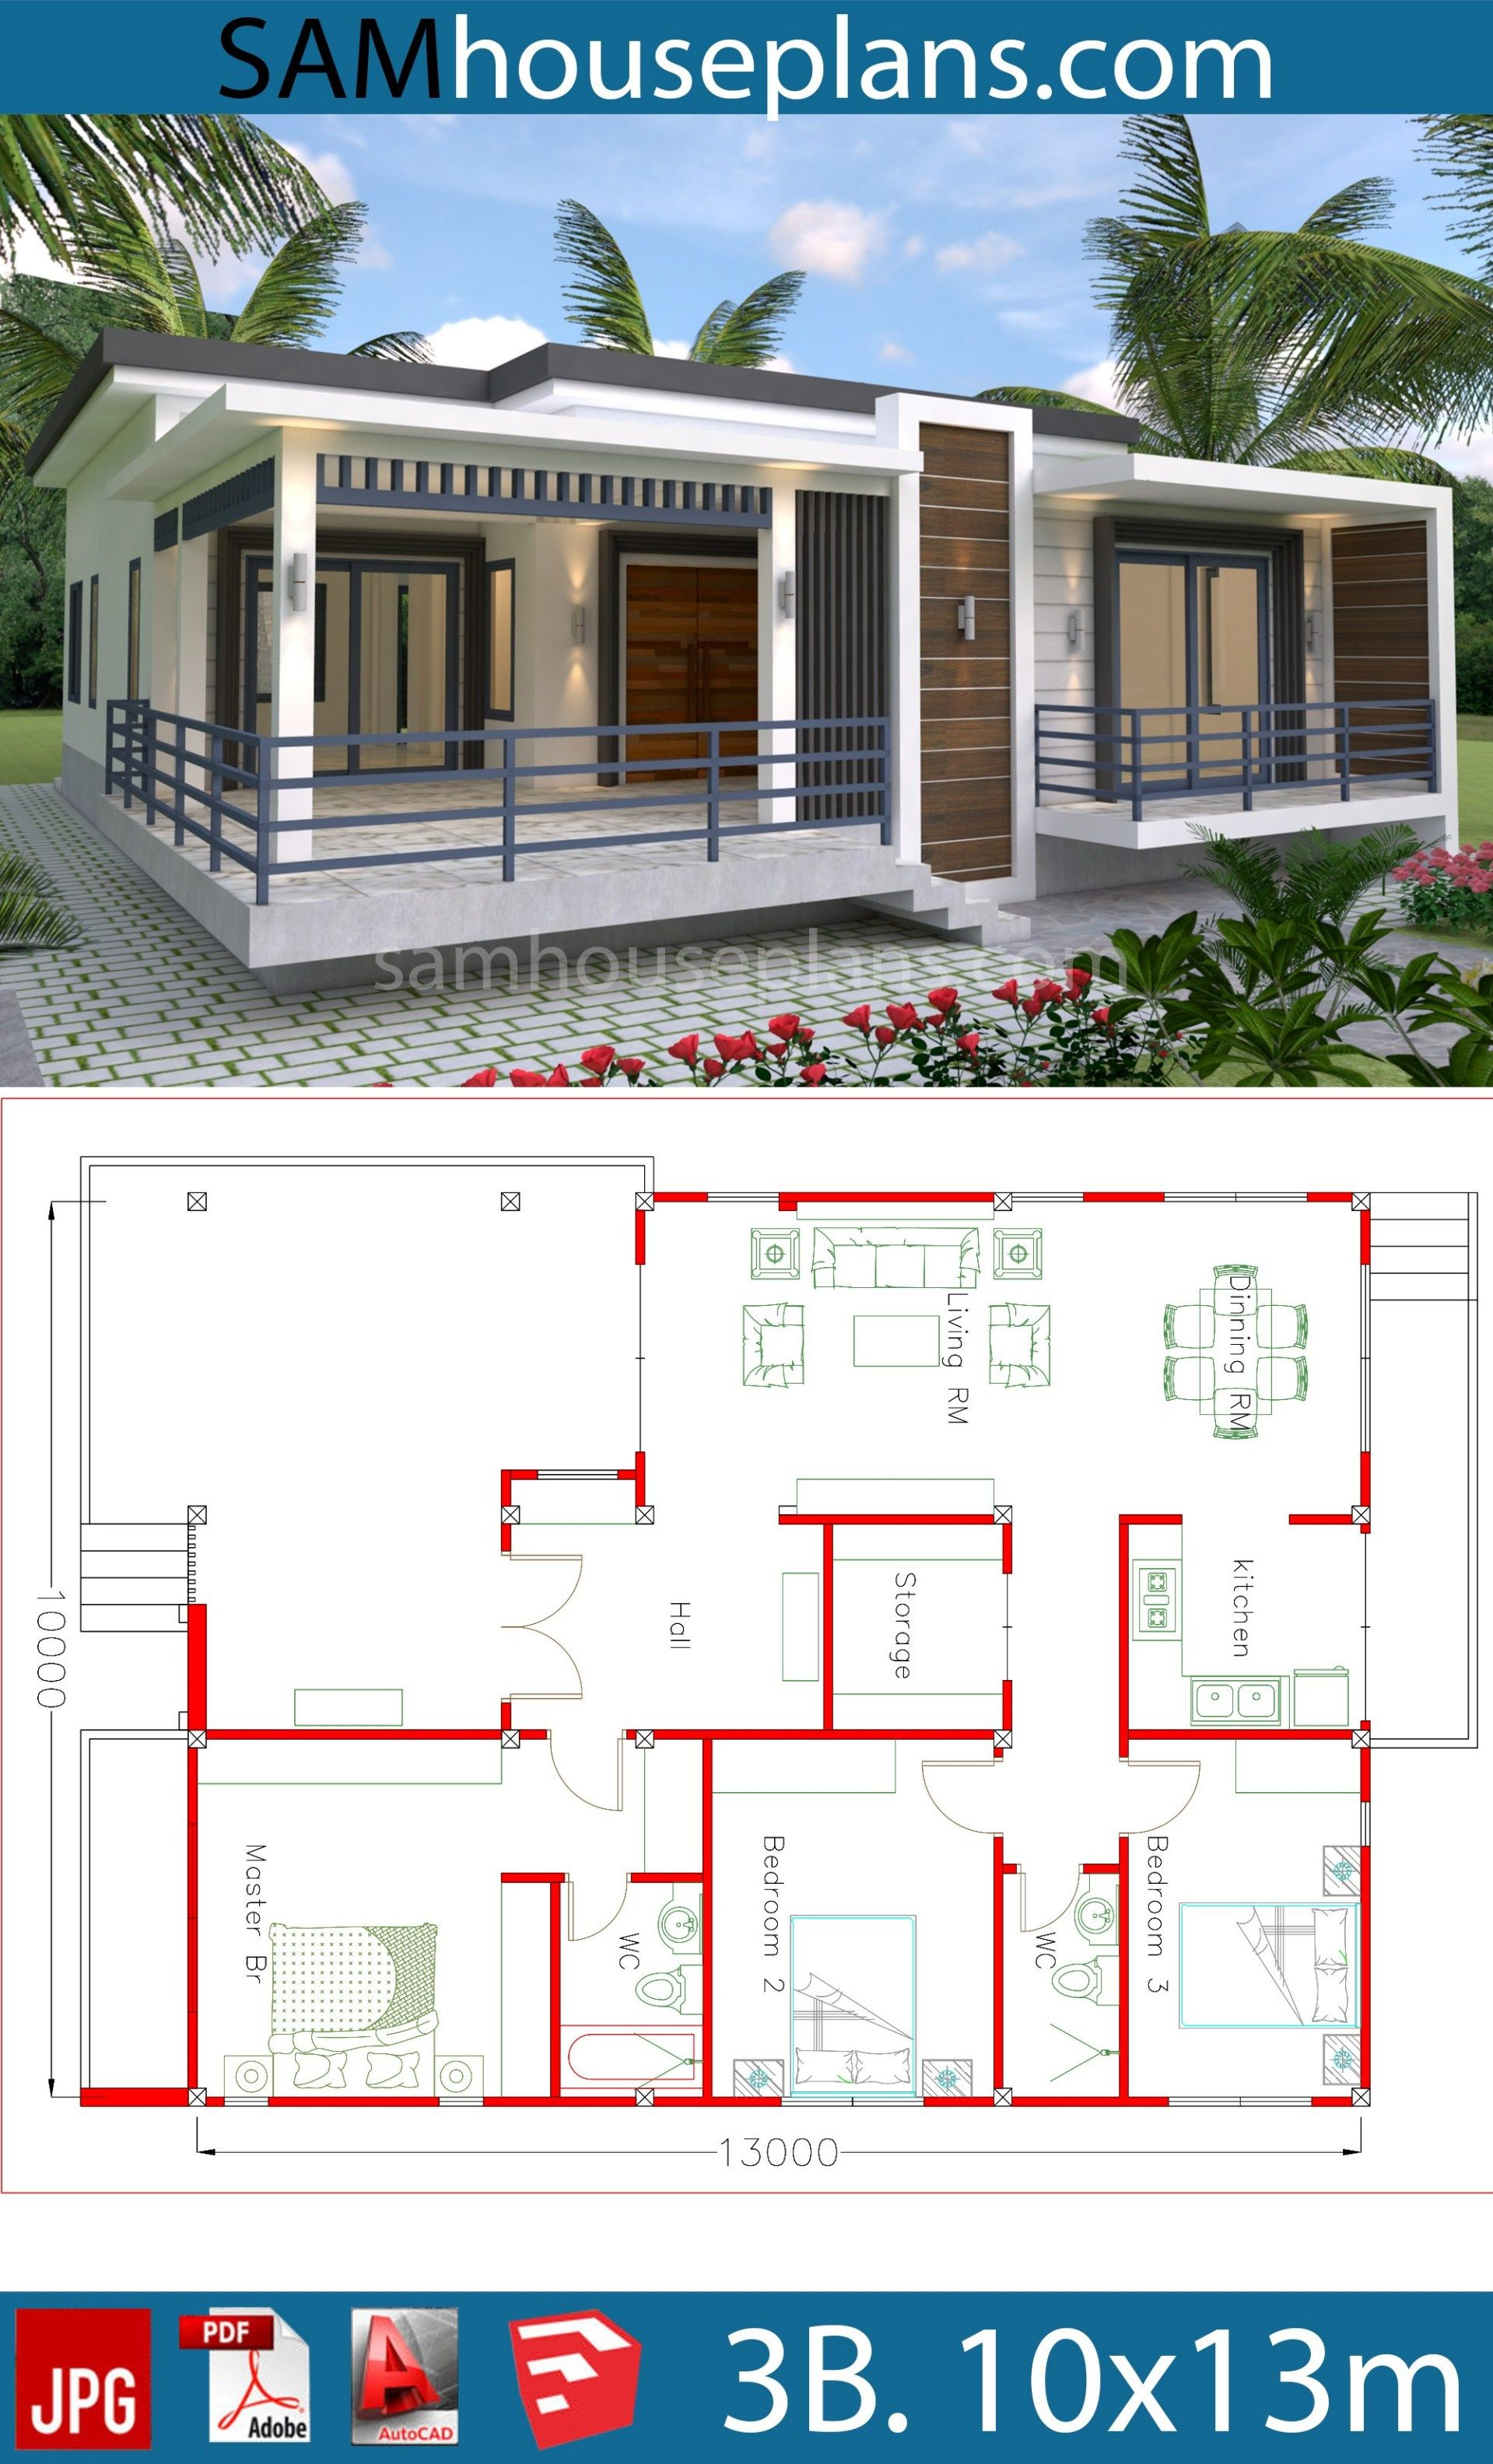 House Plans 10x13m With 3 Bedrooms Sam House Plans Unique House Plans Beautiful House Plans House Plan Gallery